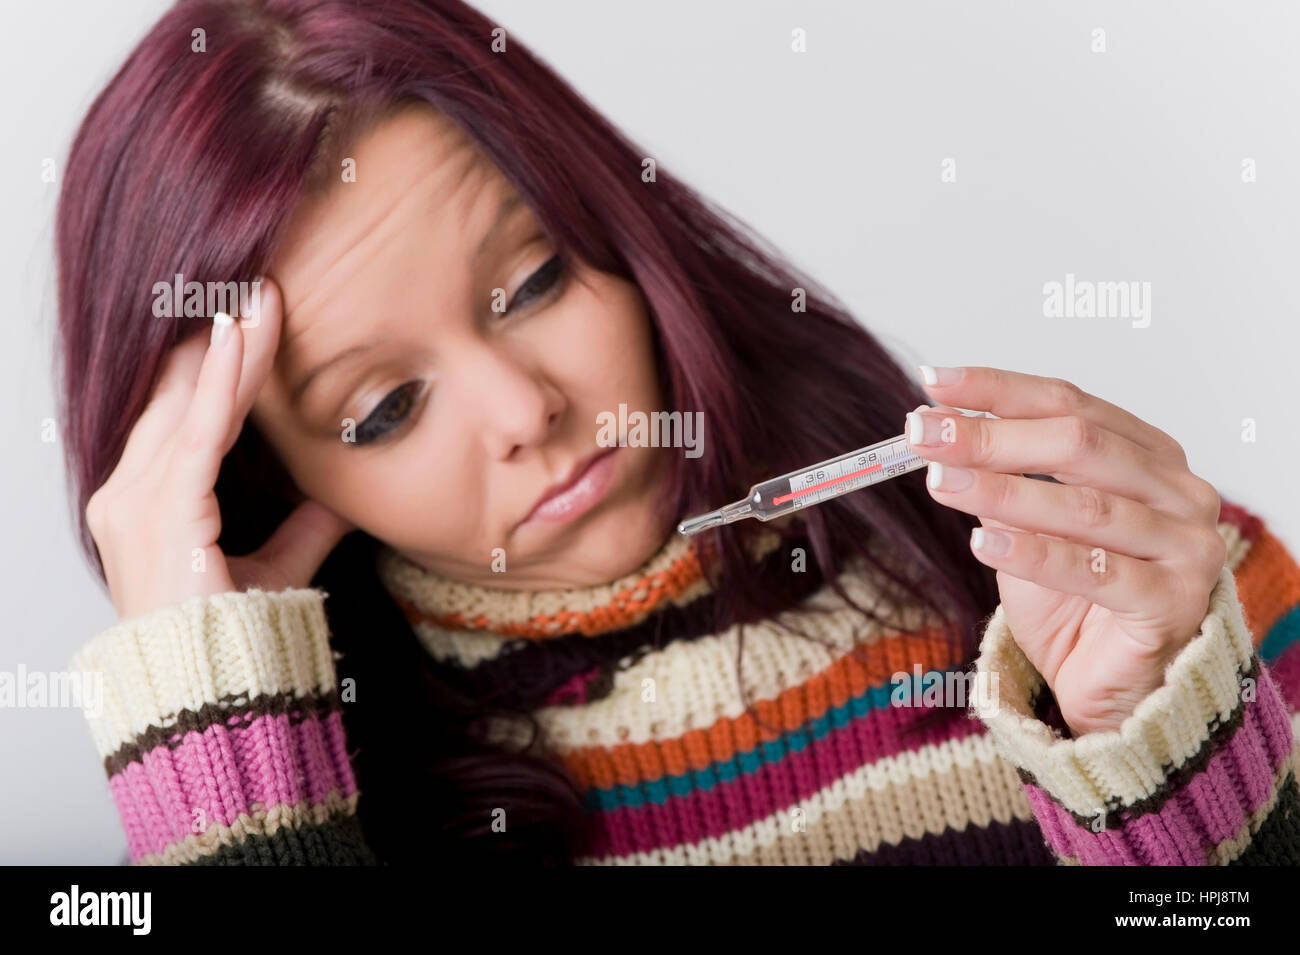 Model released , Kranke Frau mit Fieberthermometer - sick woman with clinical thermometer Stock Photo